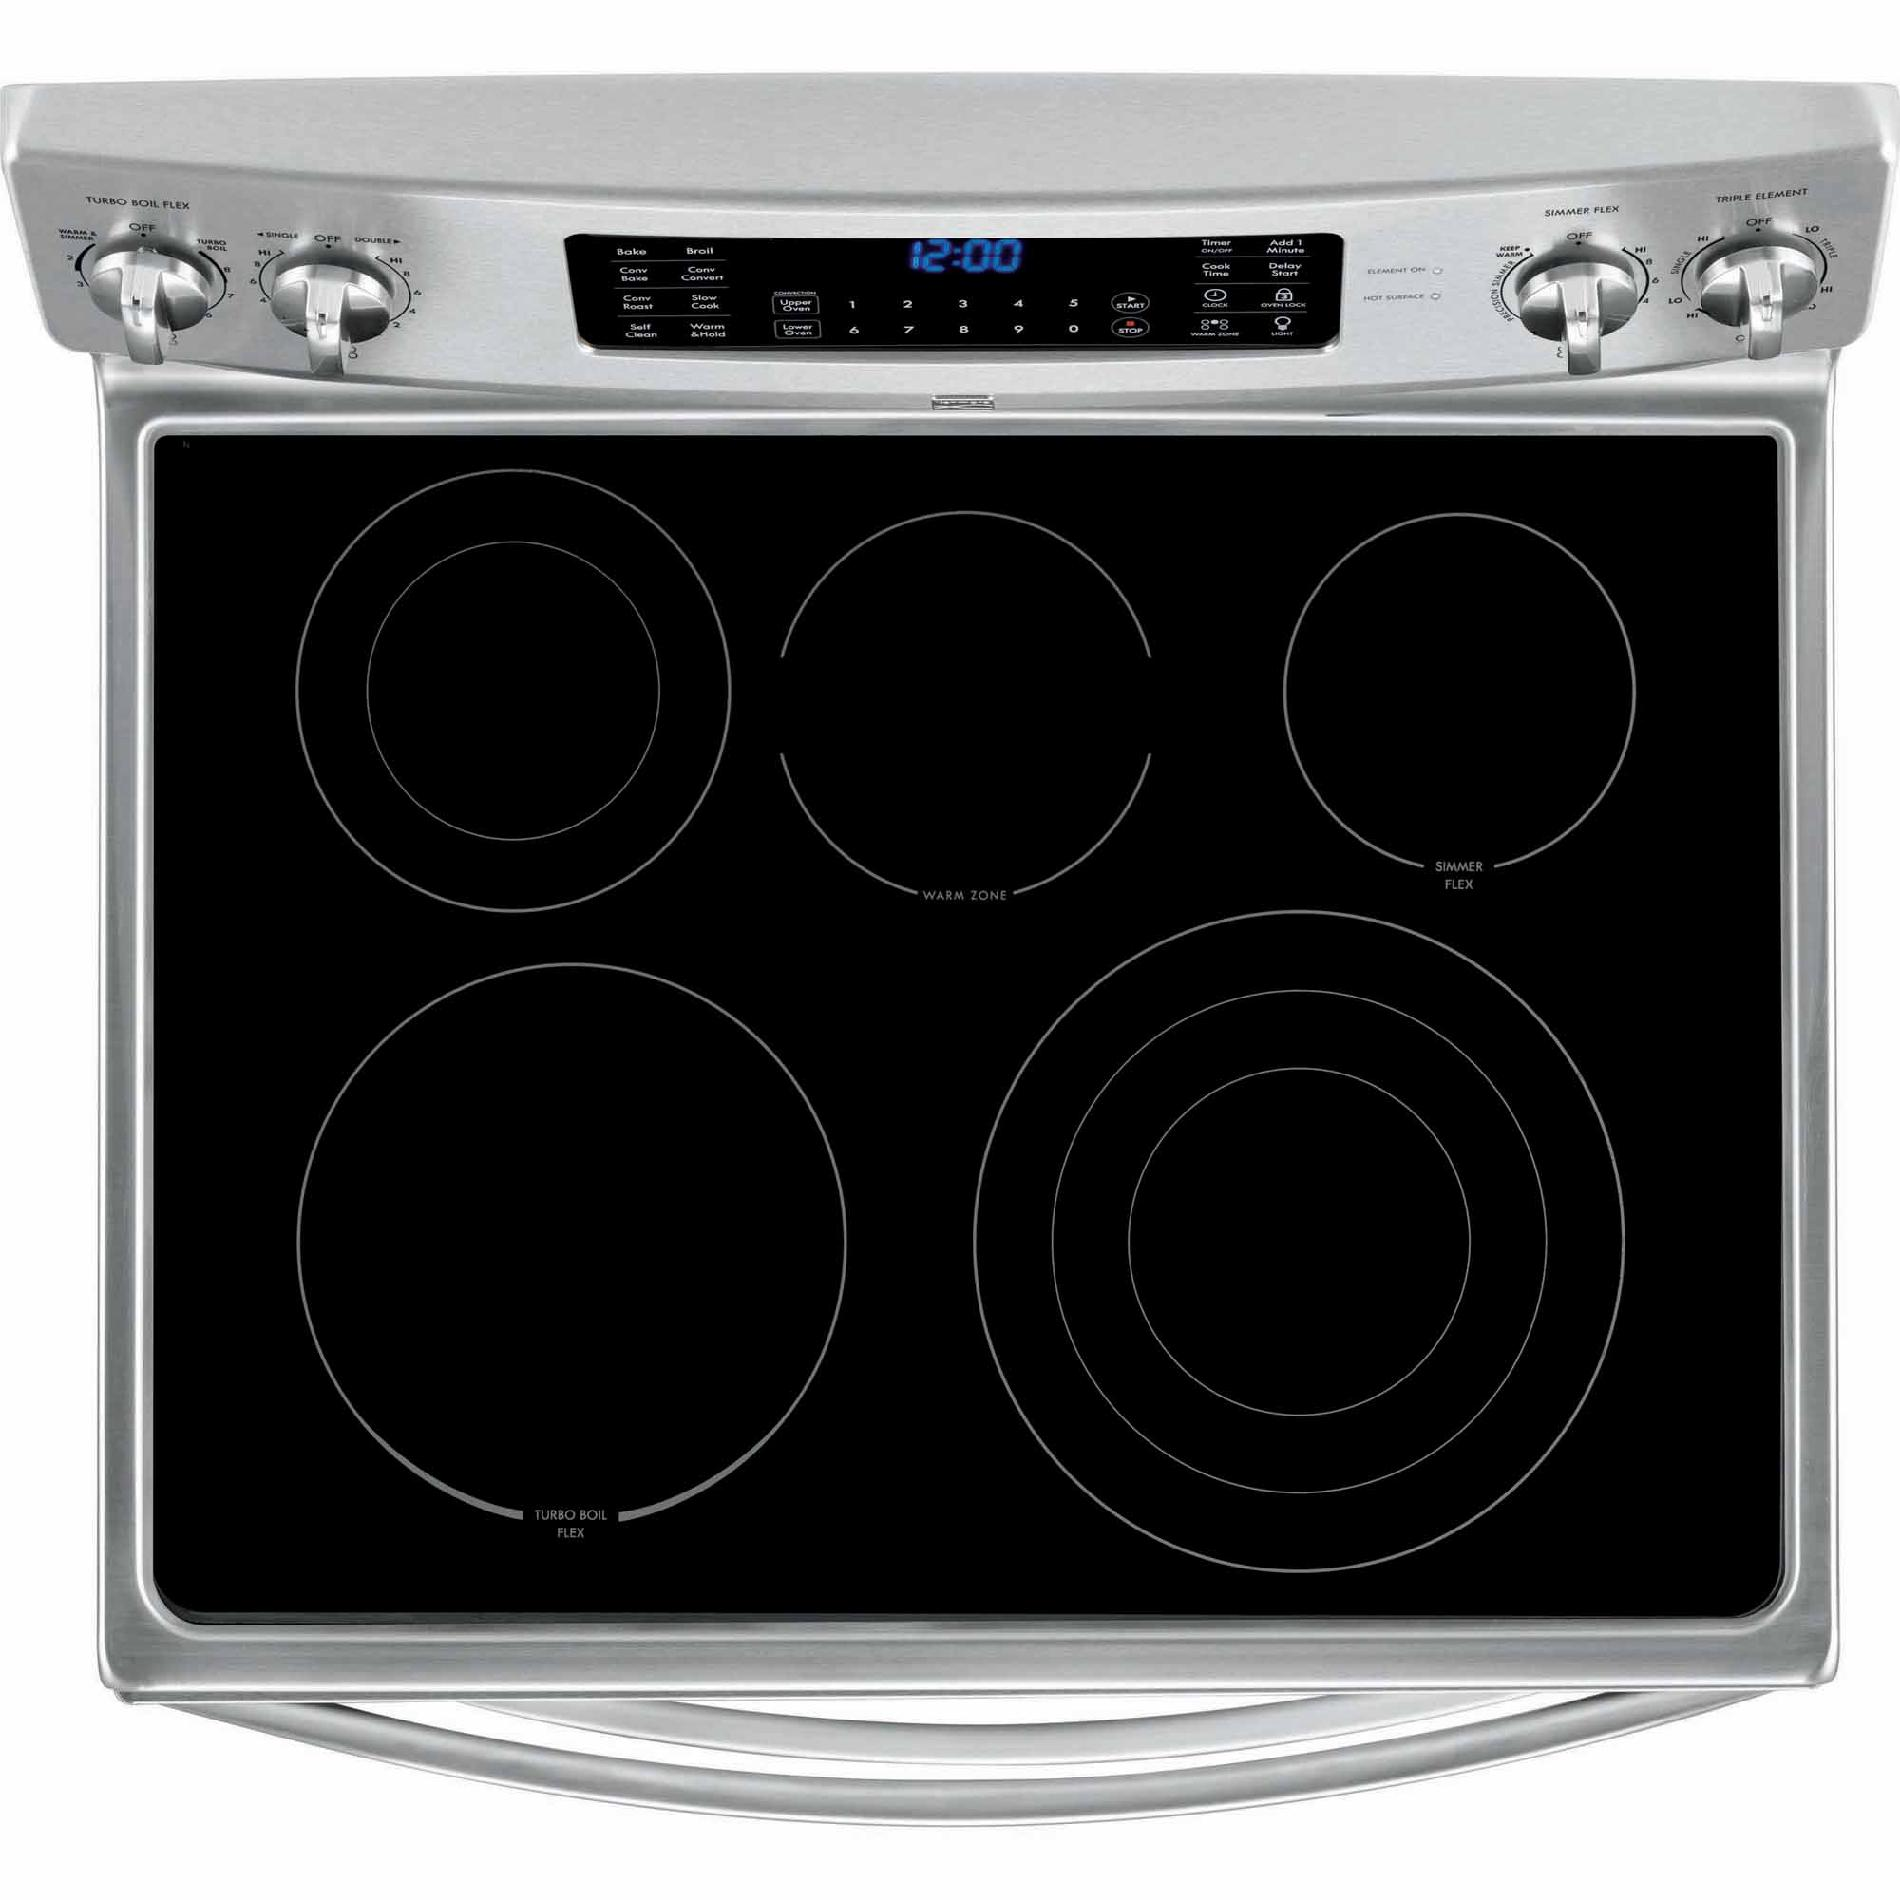 Kenmore Elite 97323 6.9 cu. ft. Double-Oven Electric Range w/ True Convection - Stainless Steel